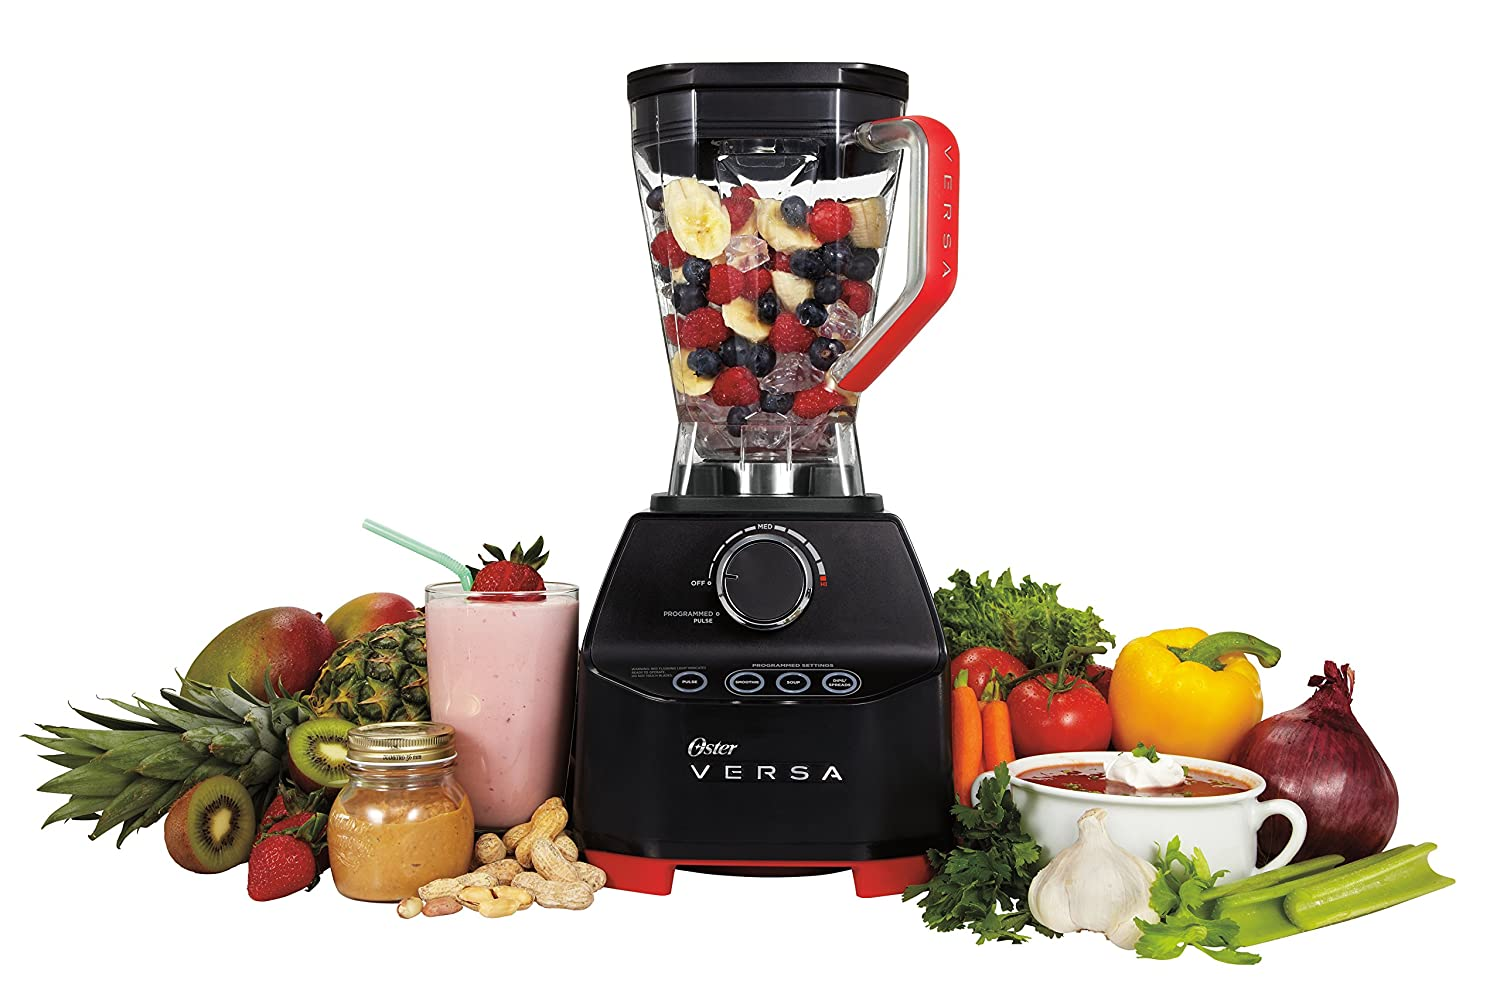 Amazon.com: Oster Versa Pro Series Blender: Electric Countertop ...